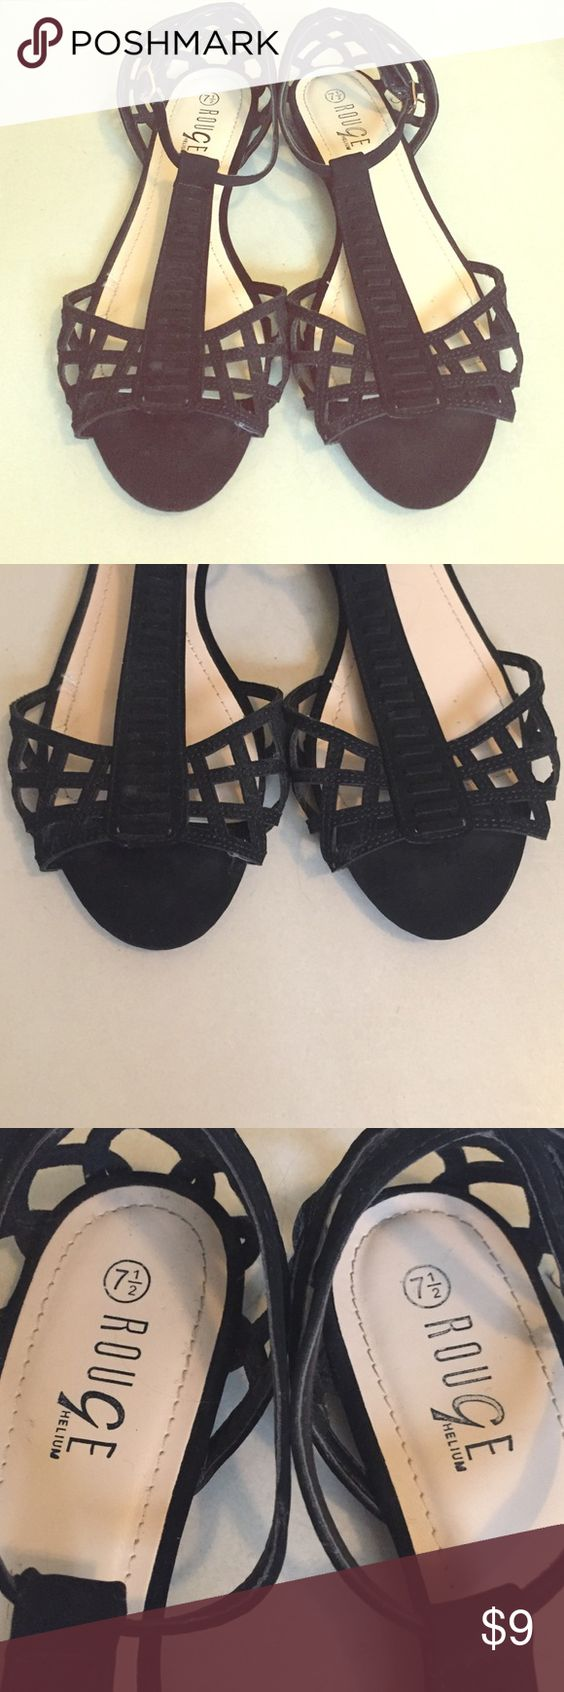 Black sandals size 7 - Black Sandals Size 7 1 2 Great Condition Please Feel Free To Make